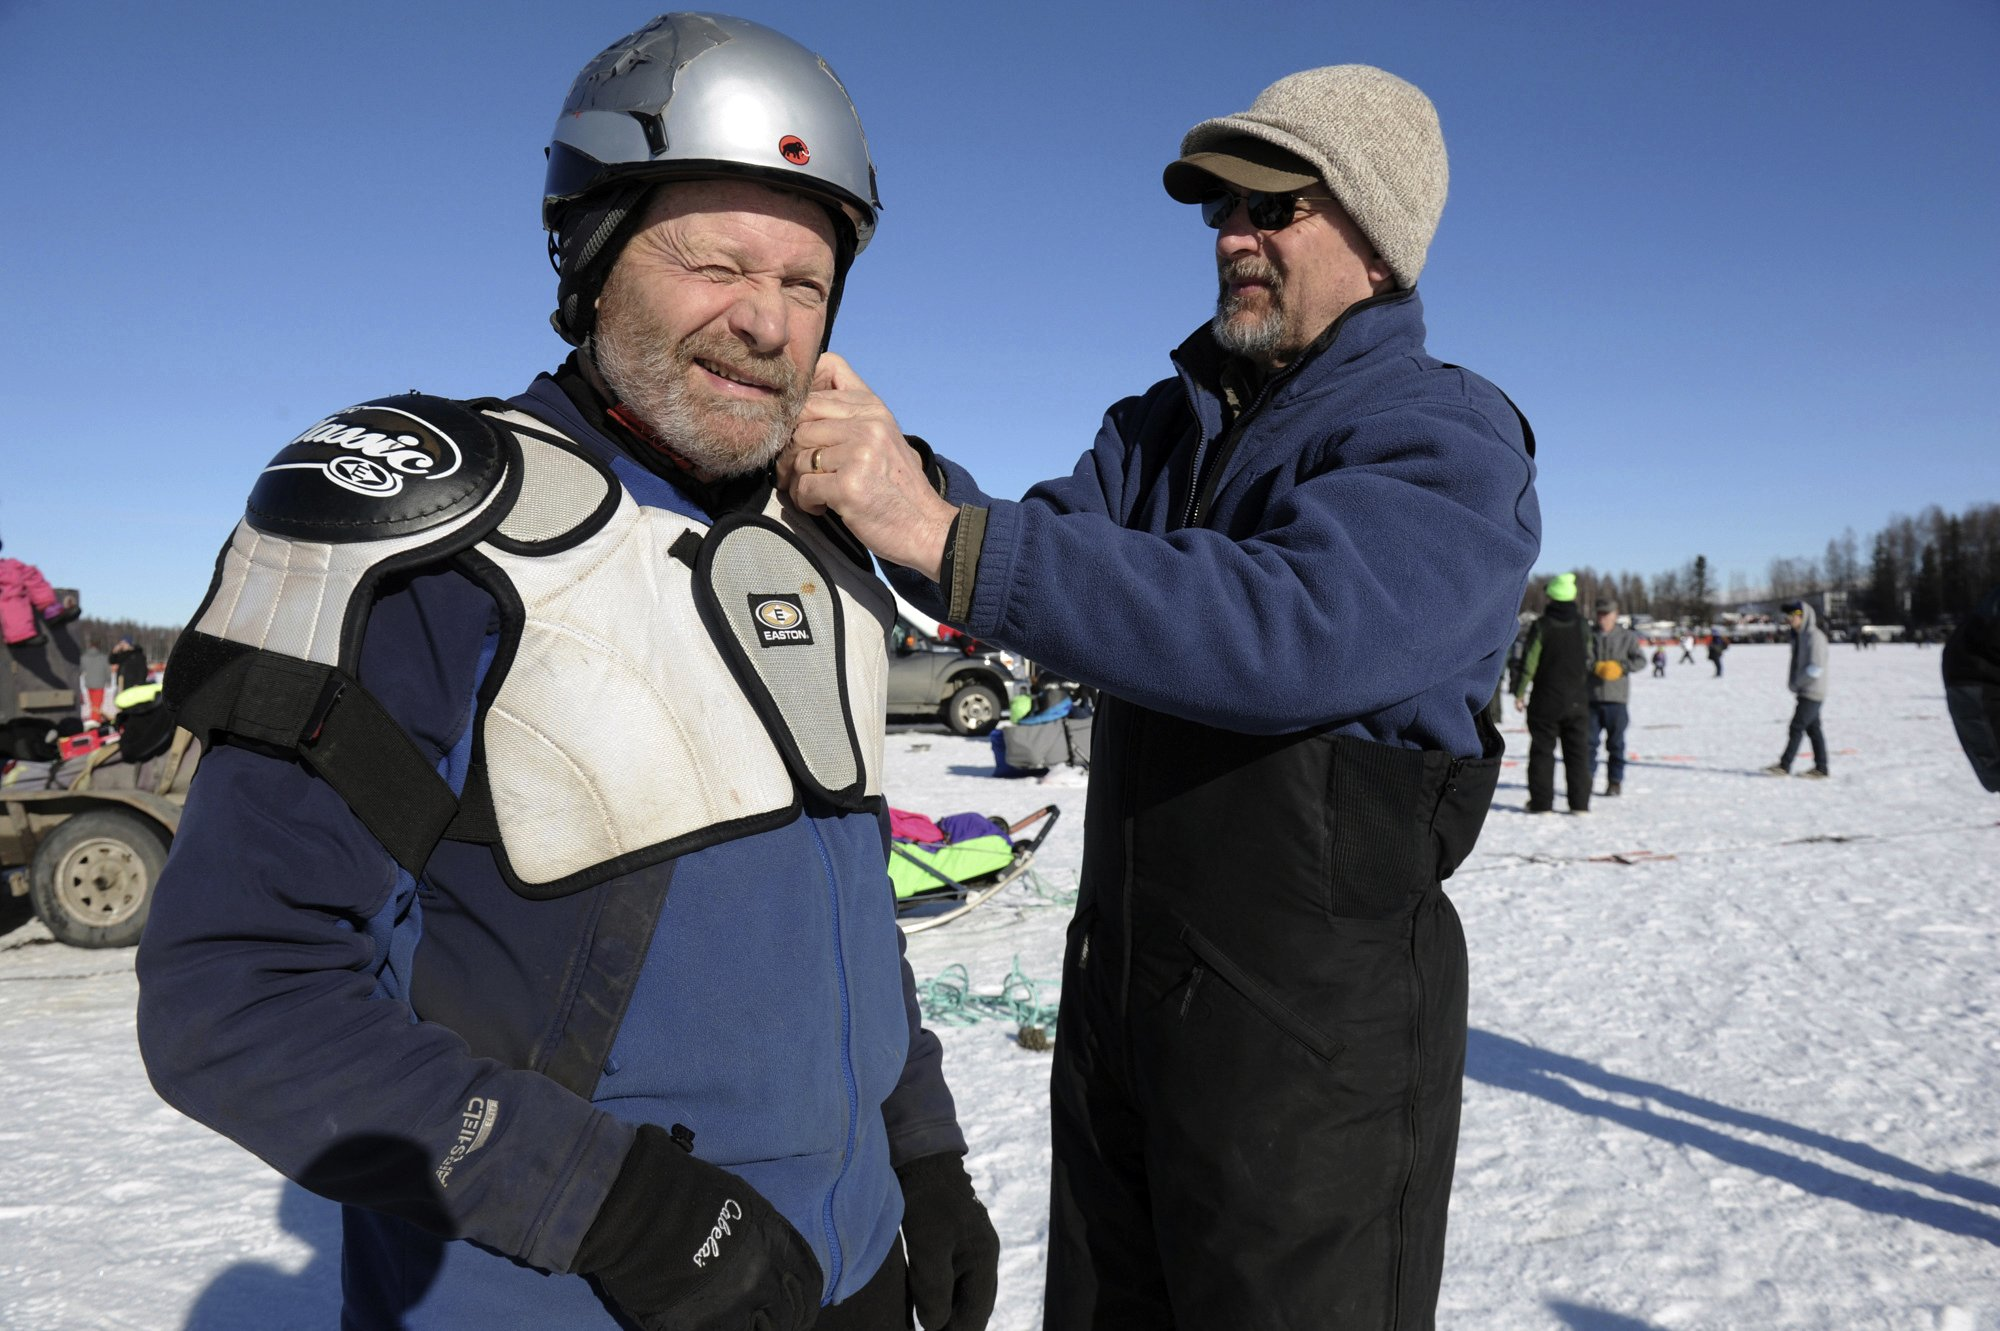 Musher denies Iditarod's concerns over his dog care